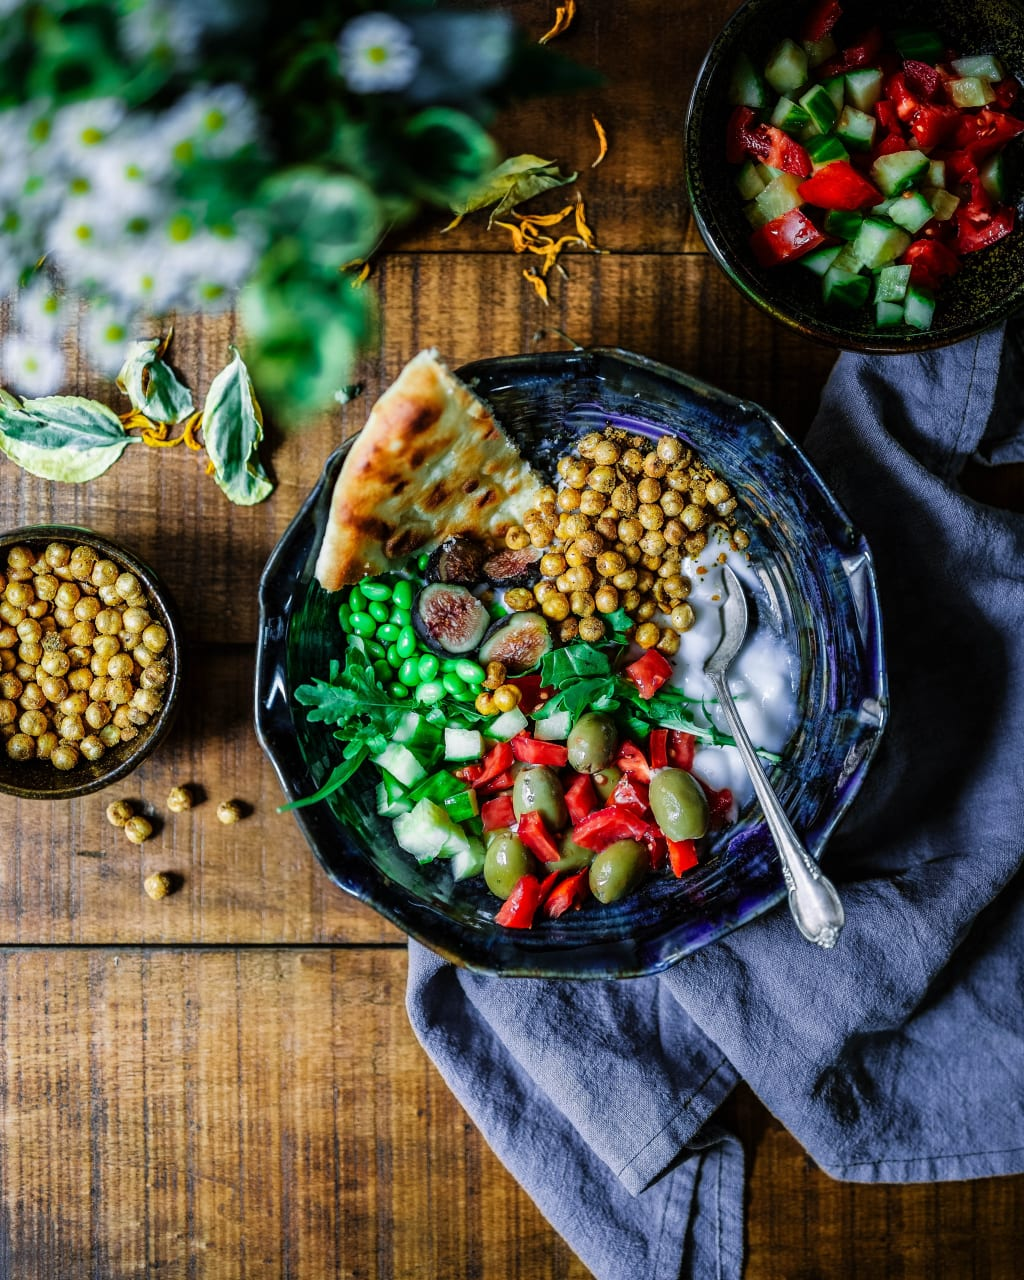 Three Healthy Foods to Start Making at Home